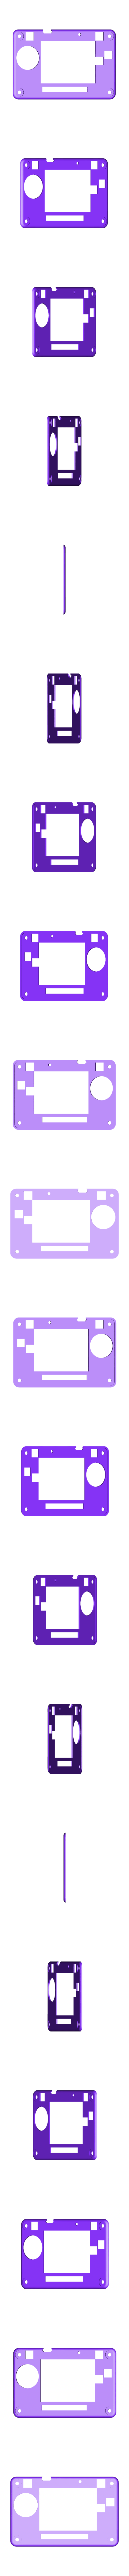 pybadge-front.stl Download free STL file PyBadge NES GamePad • 3D printing object, Adafruit